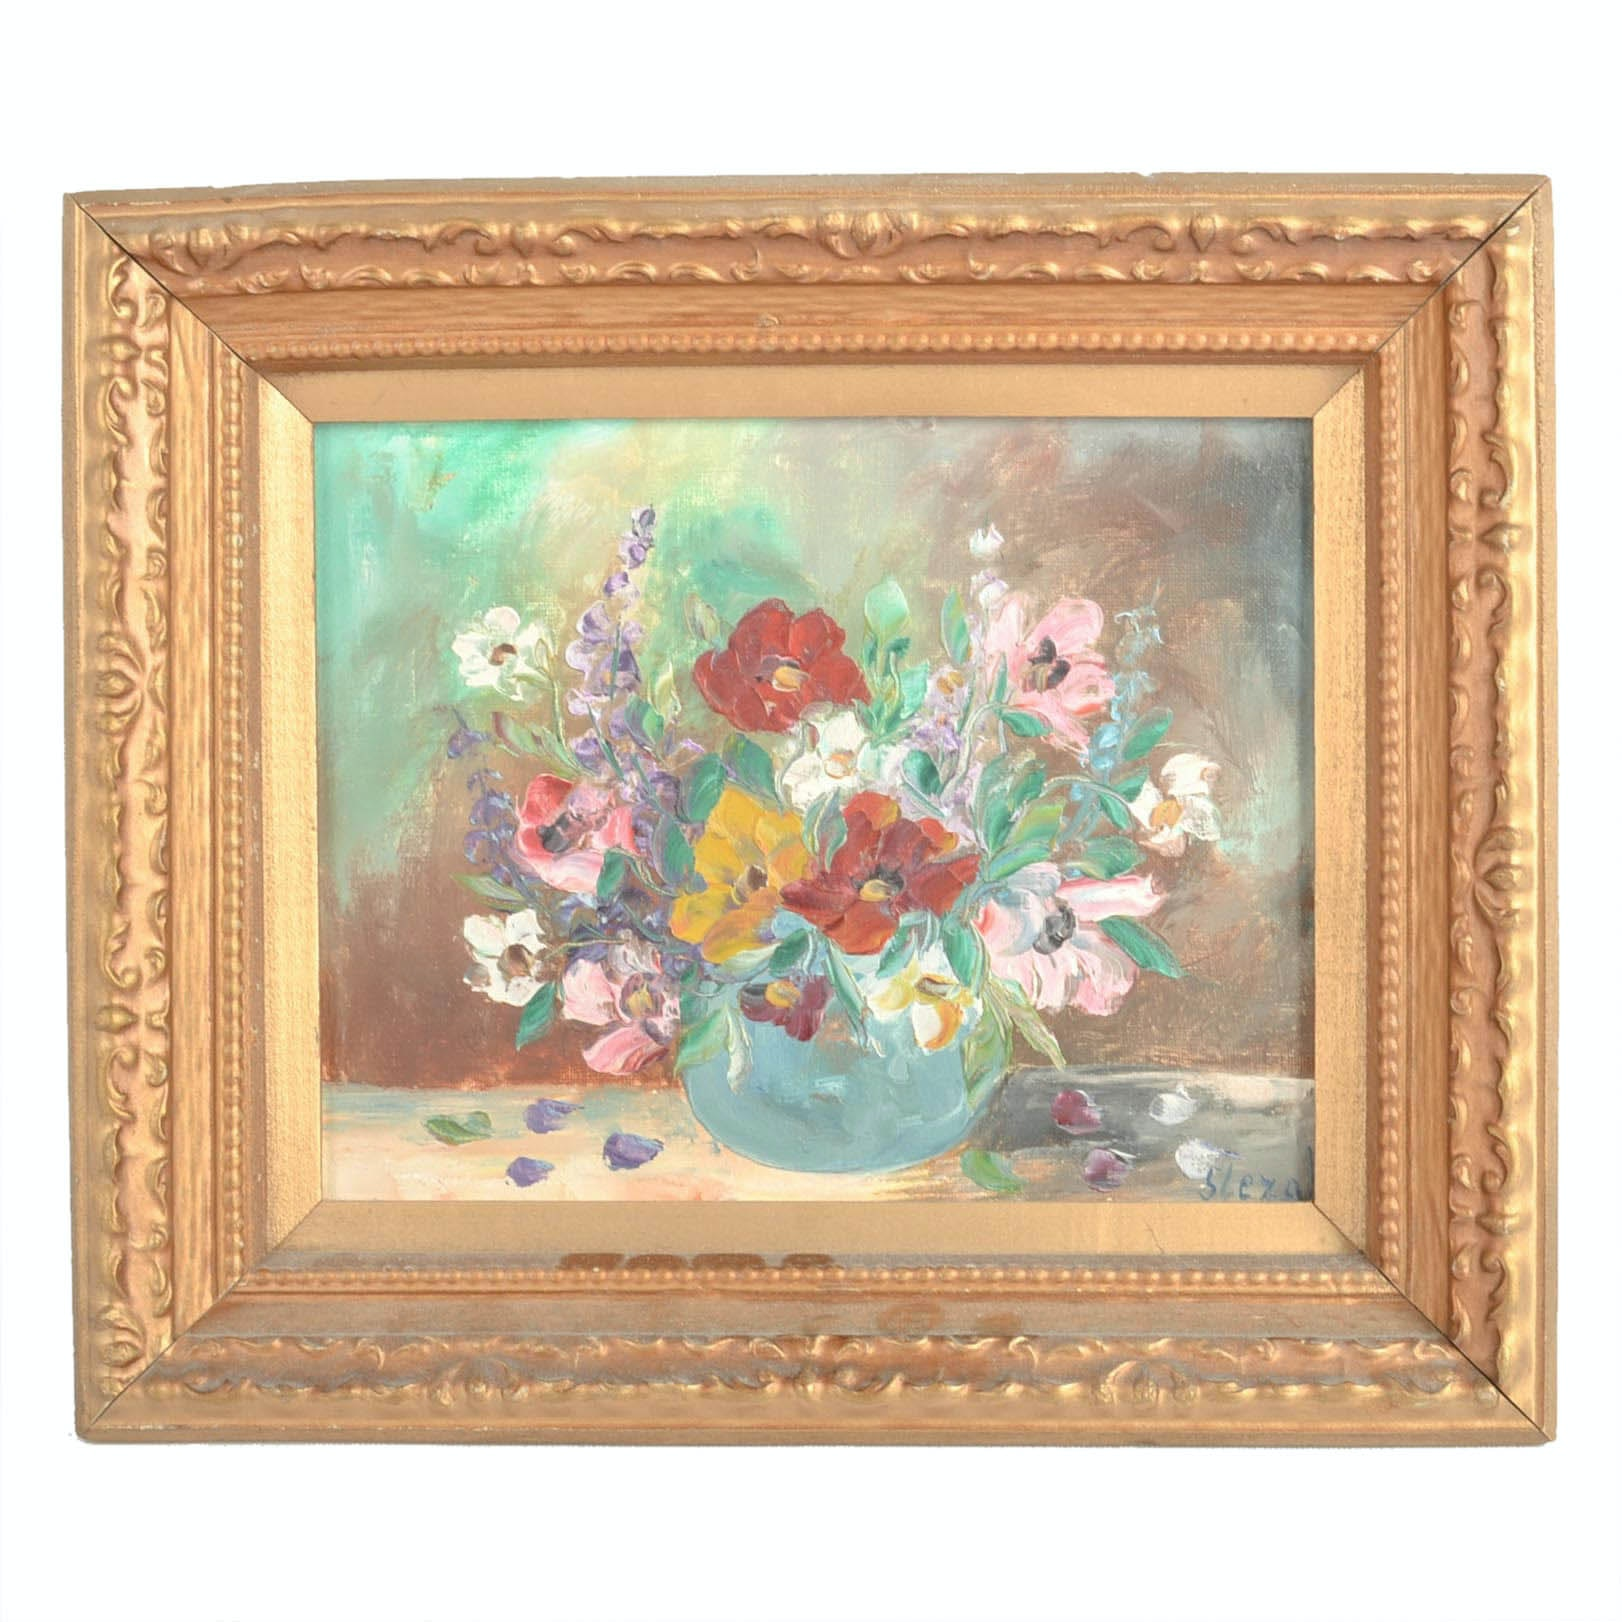 Signed Oil on Canvas Floral Still Life Painting